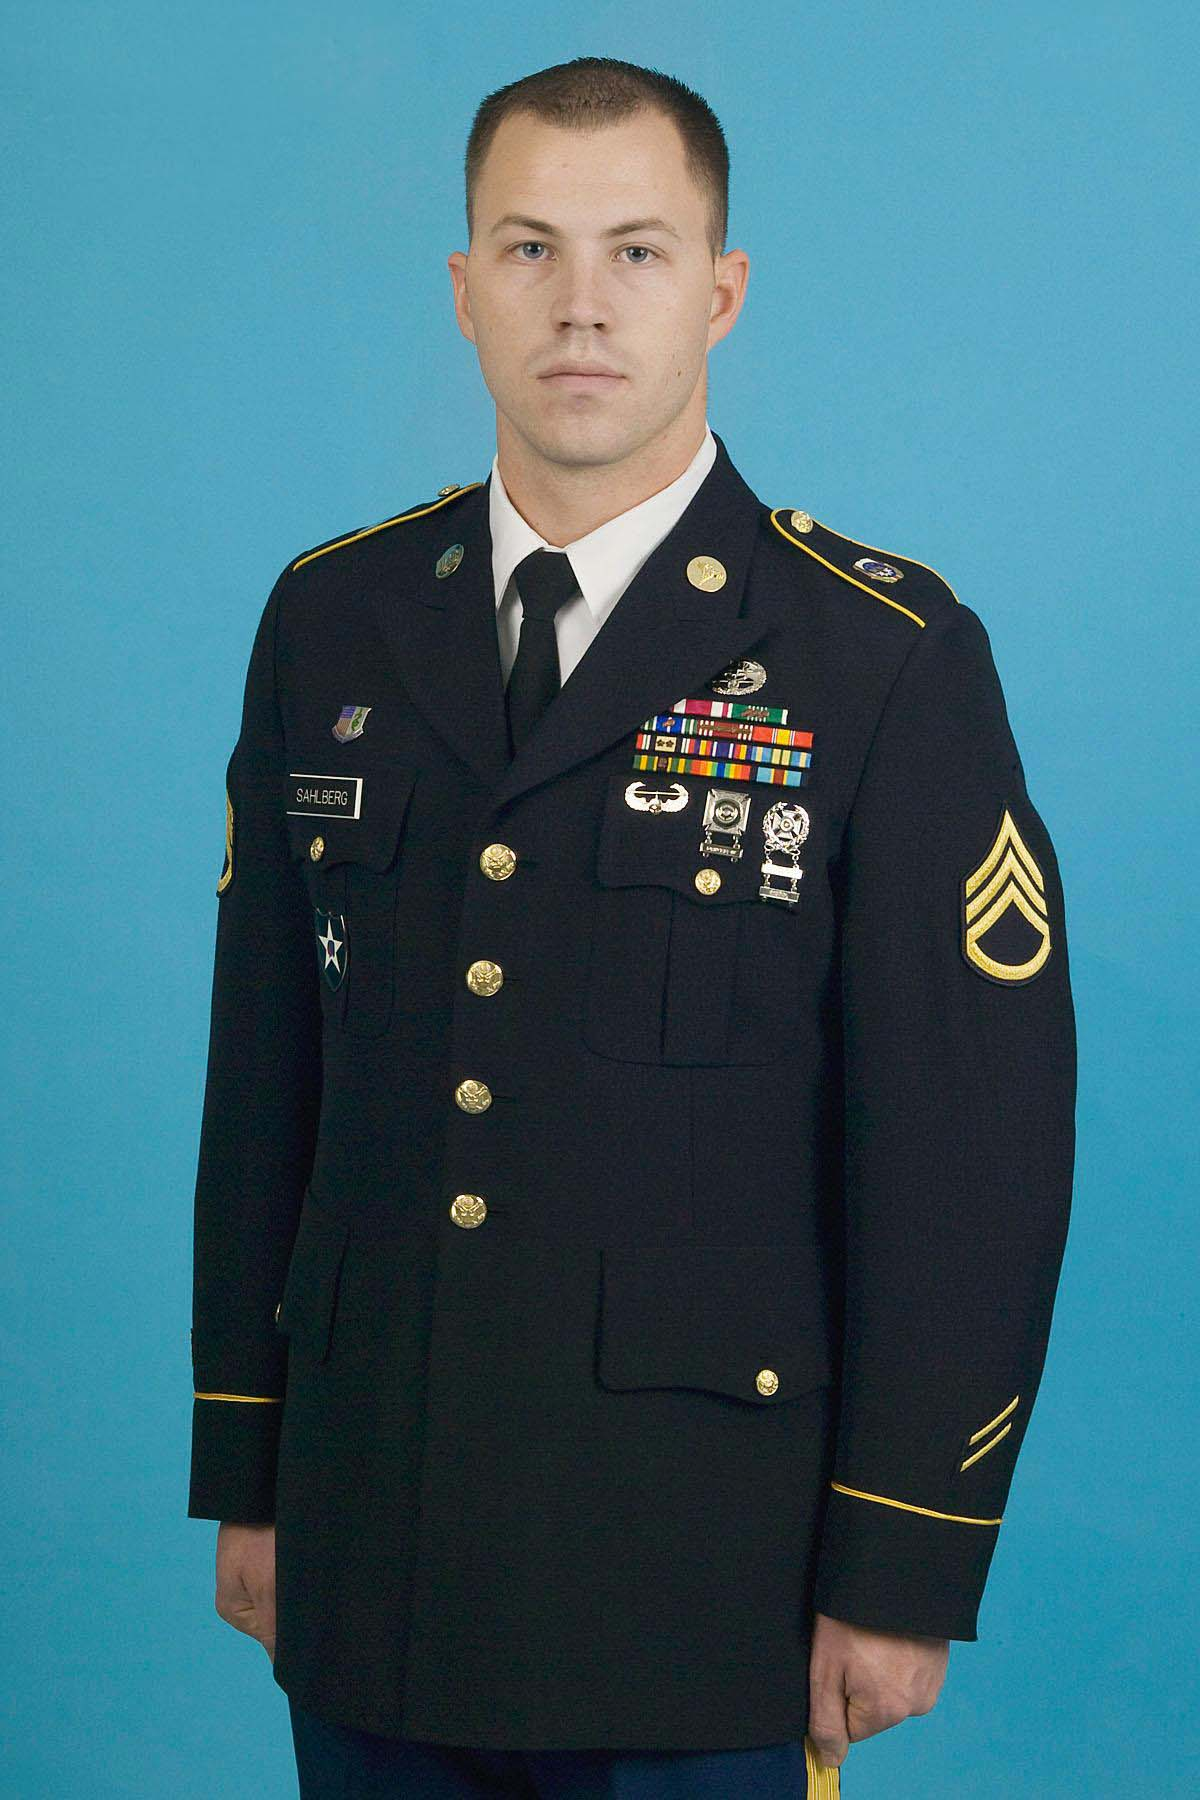 army enlisted dating officer